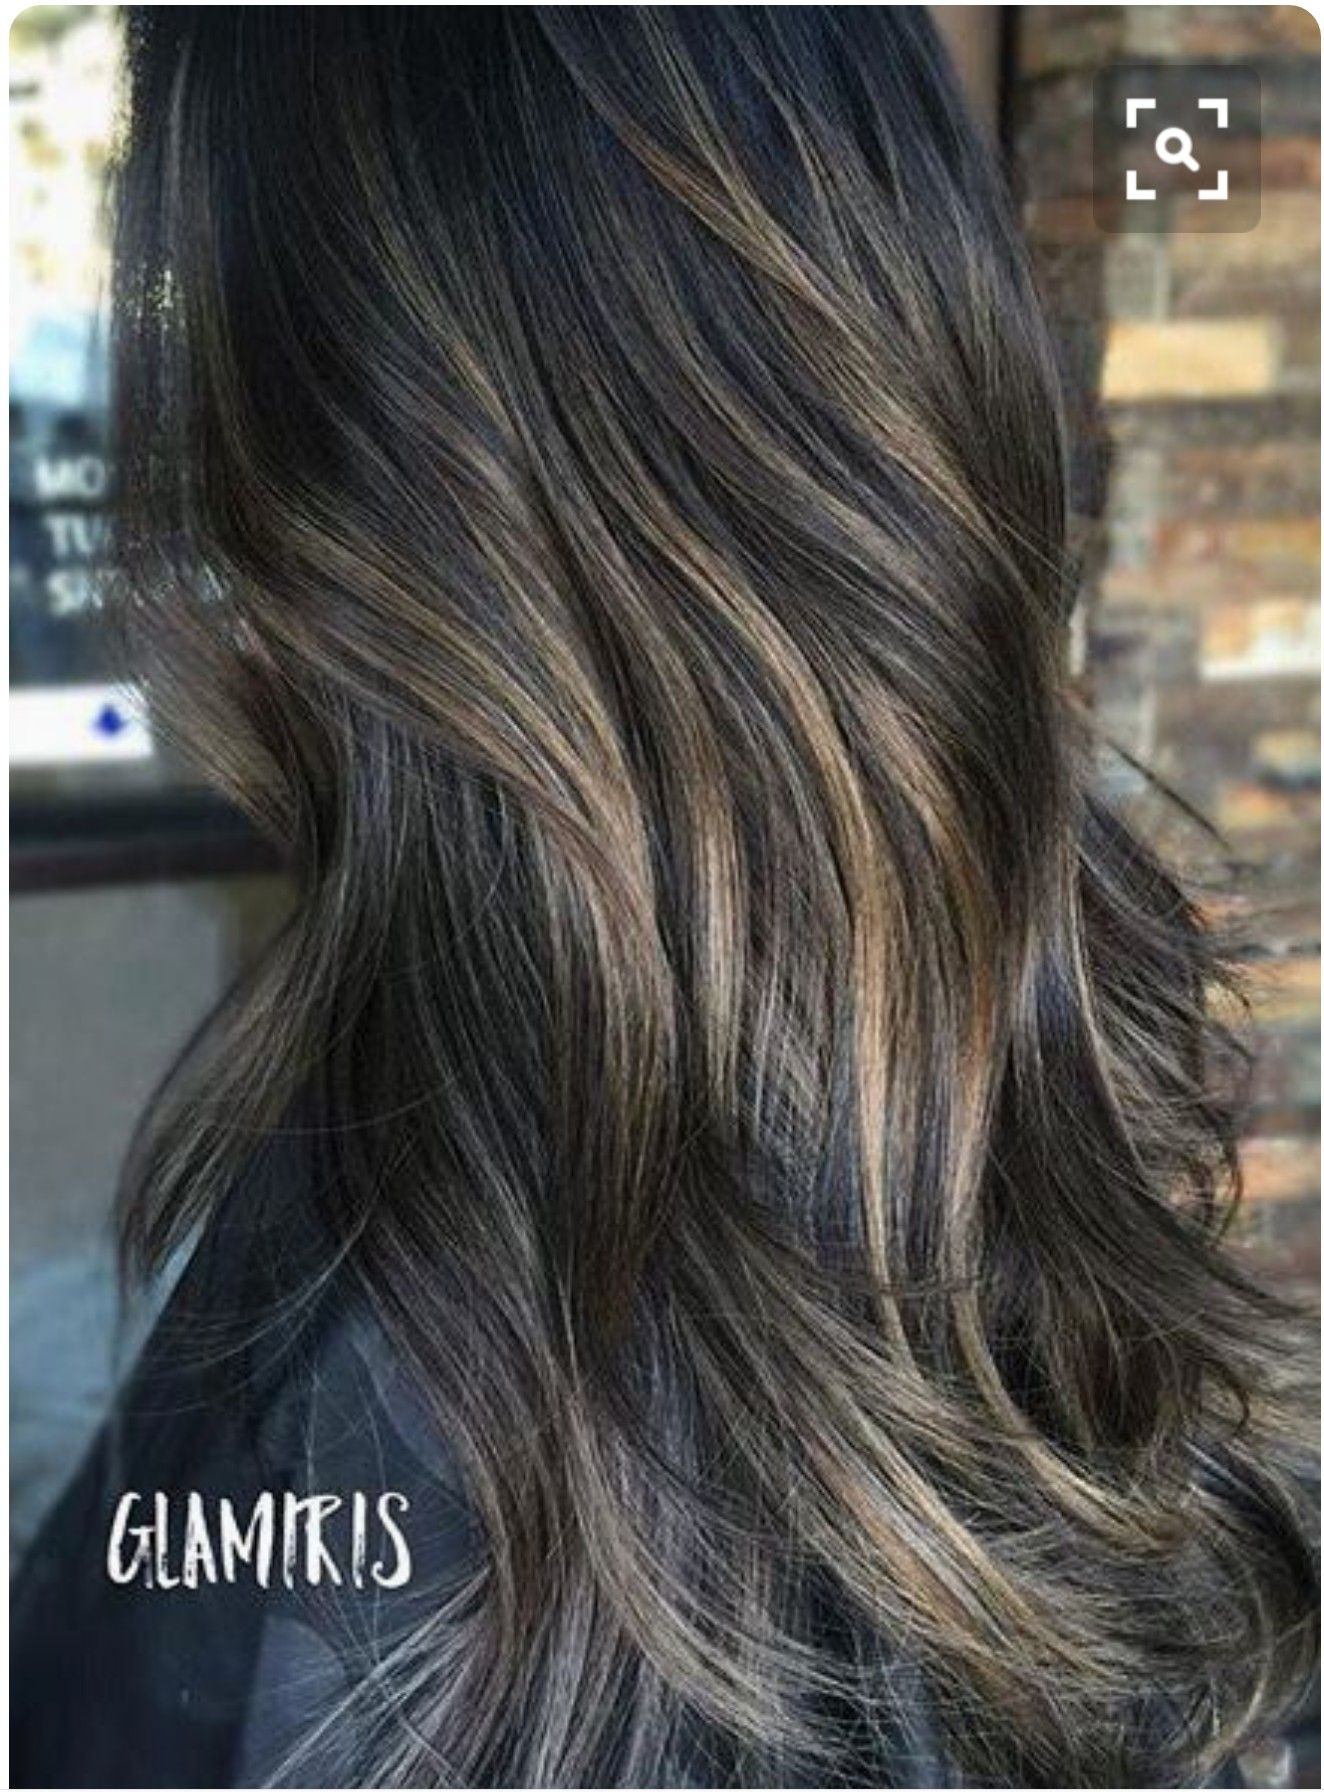 Pin By Mattie Martinez On Hair With Images Balayage Hair Hair